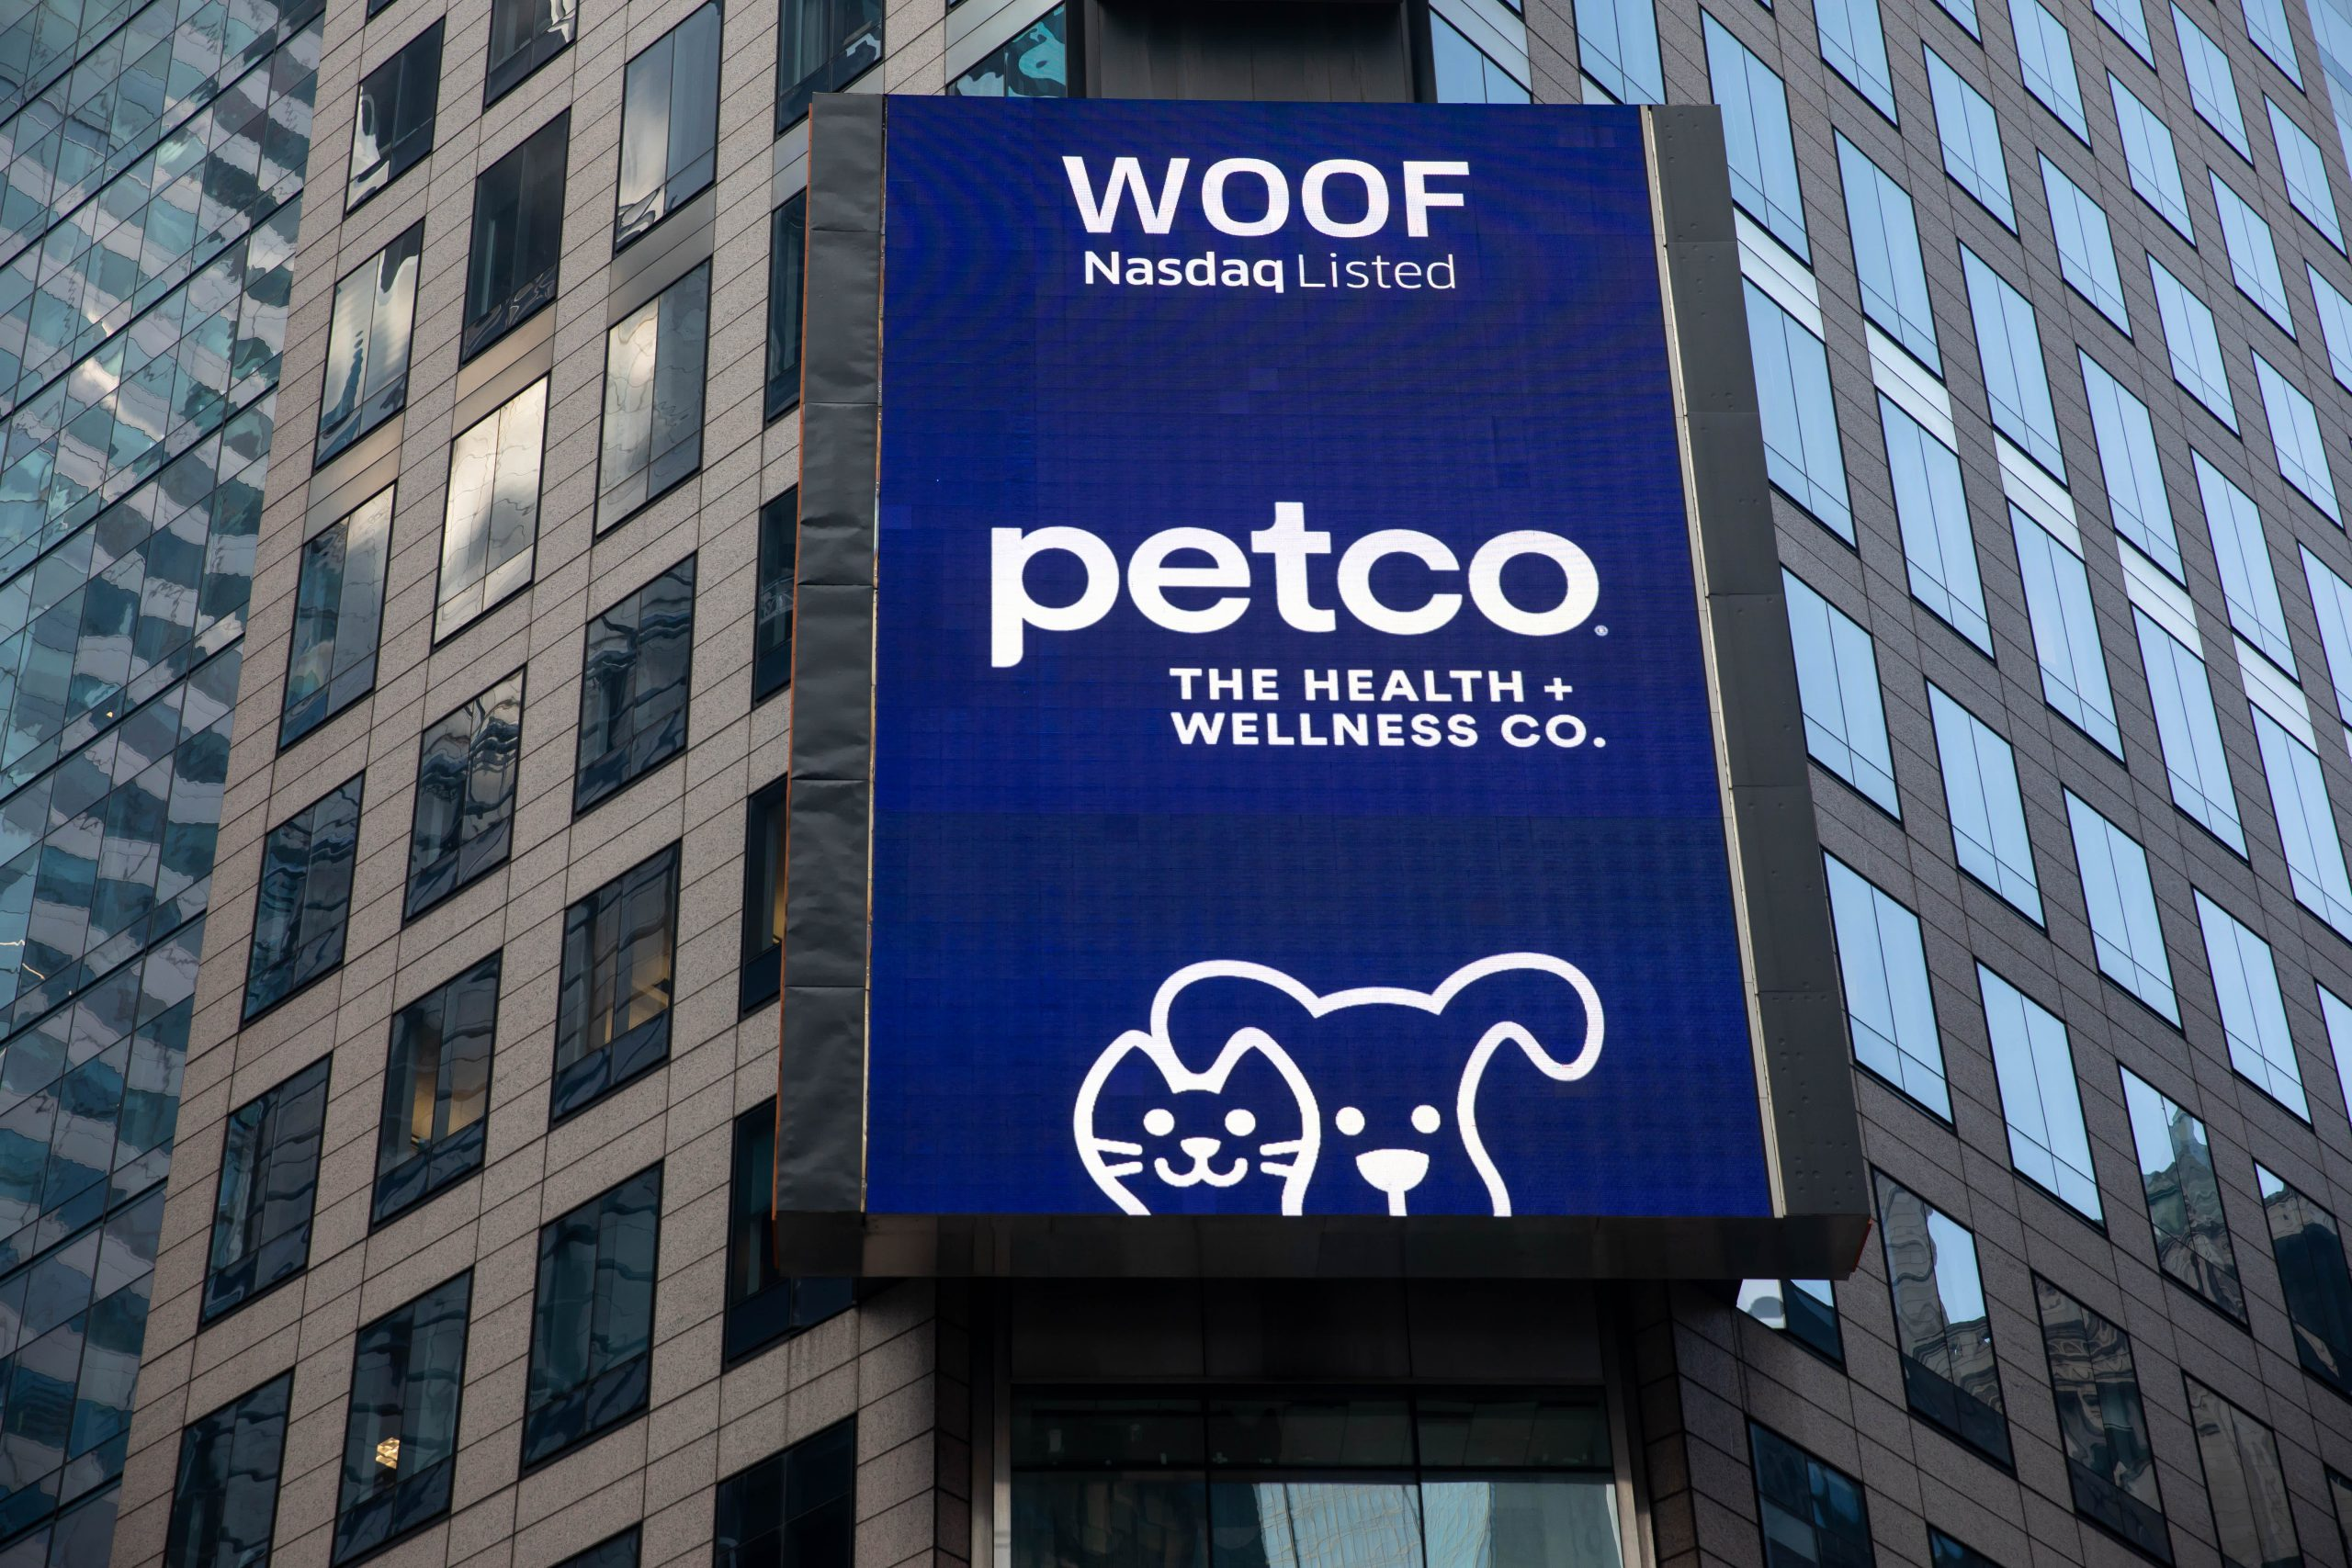 petco-shares-surge-nearly-70-as-it-returns-to-public-market